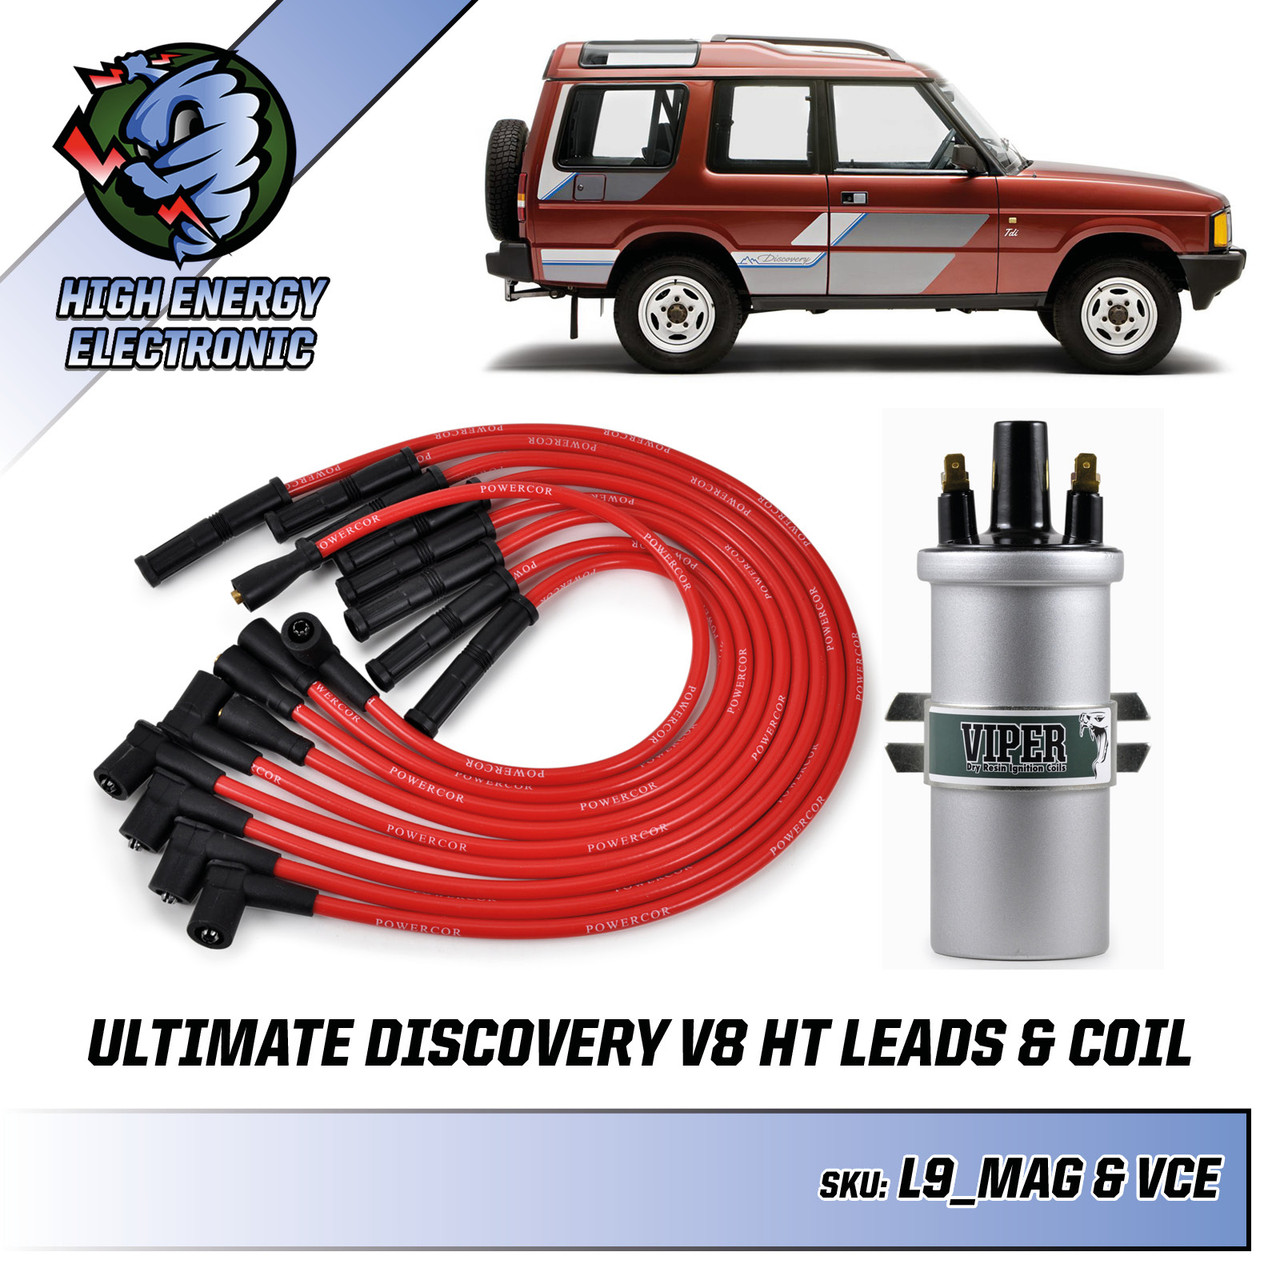 Ultimate Land Rover Discovery V8 Ignition Coil & HT Leads Bundle